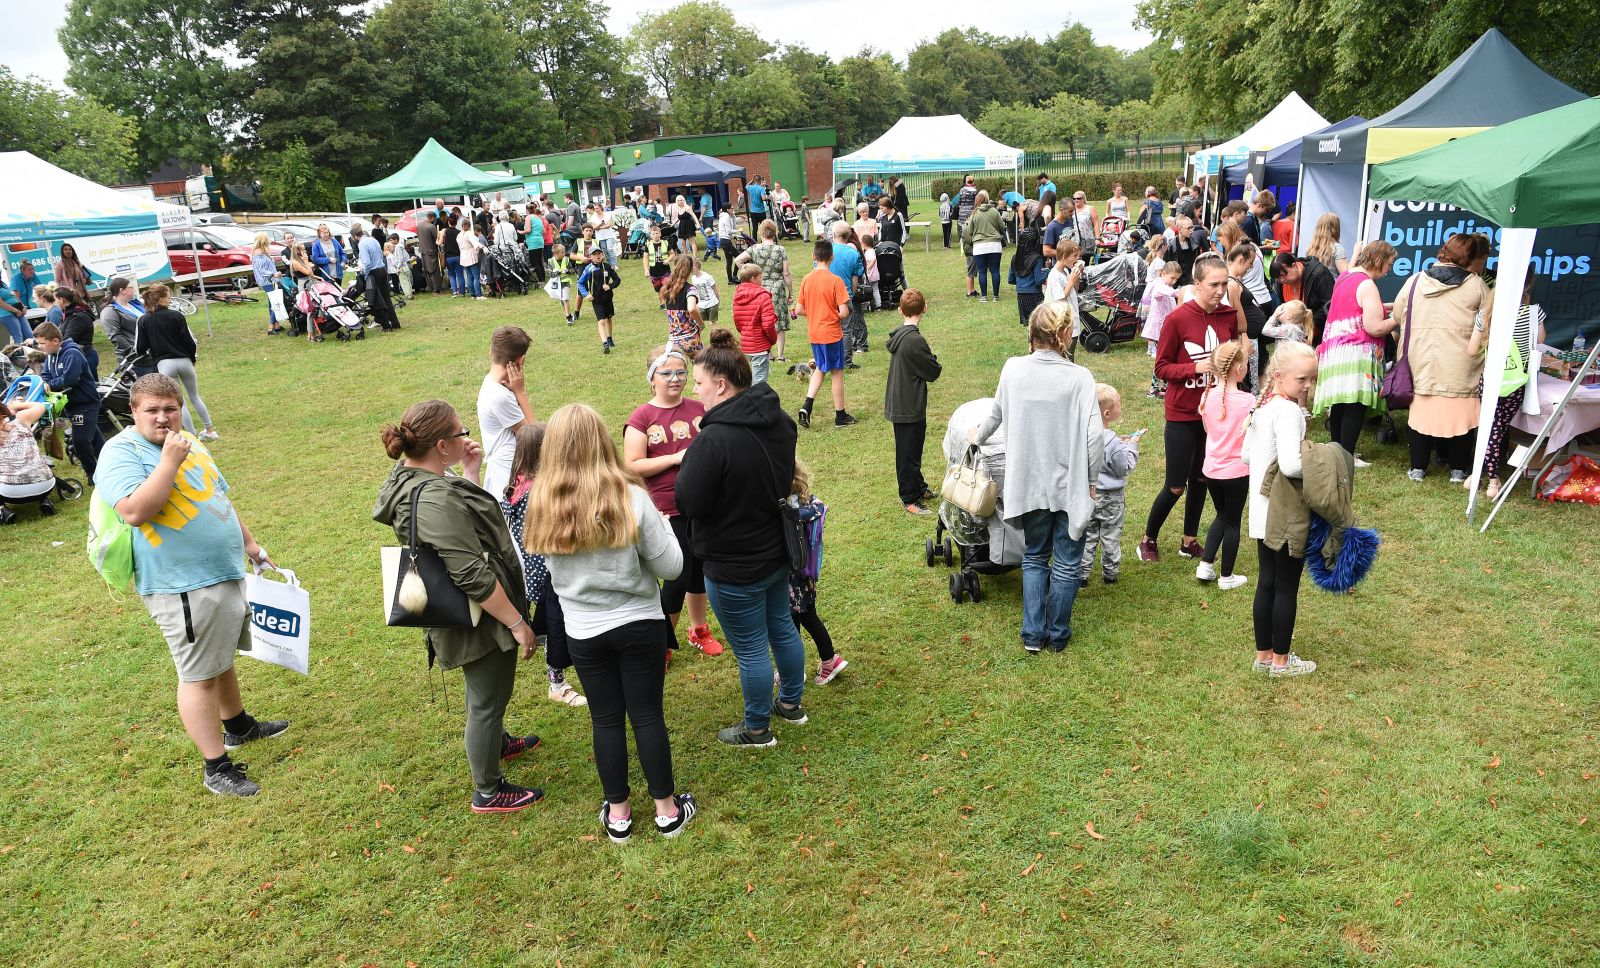 Crowds flock to Hoyles Park in Bury for Six Town Housing's Summer Roadshow